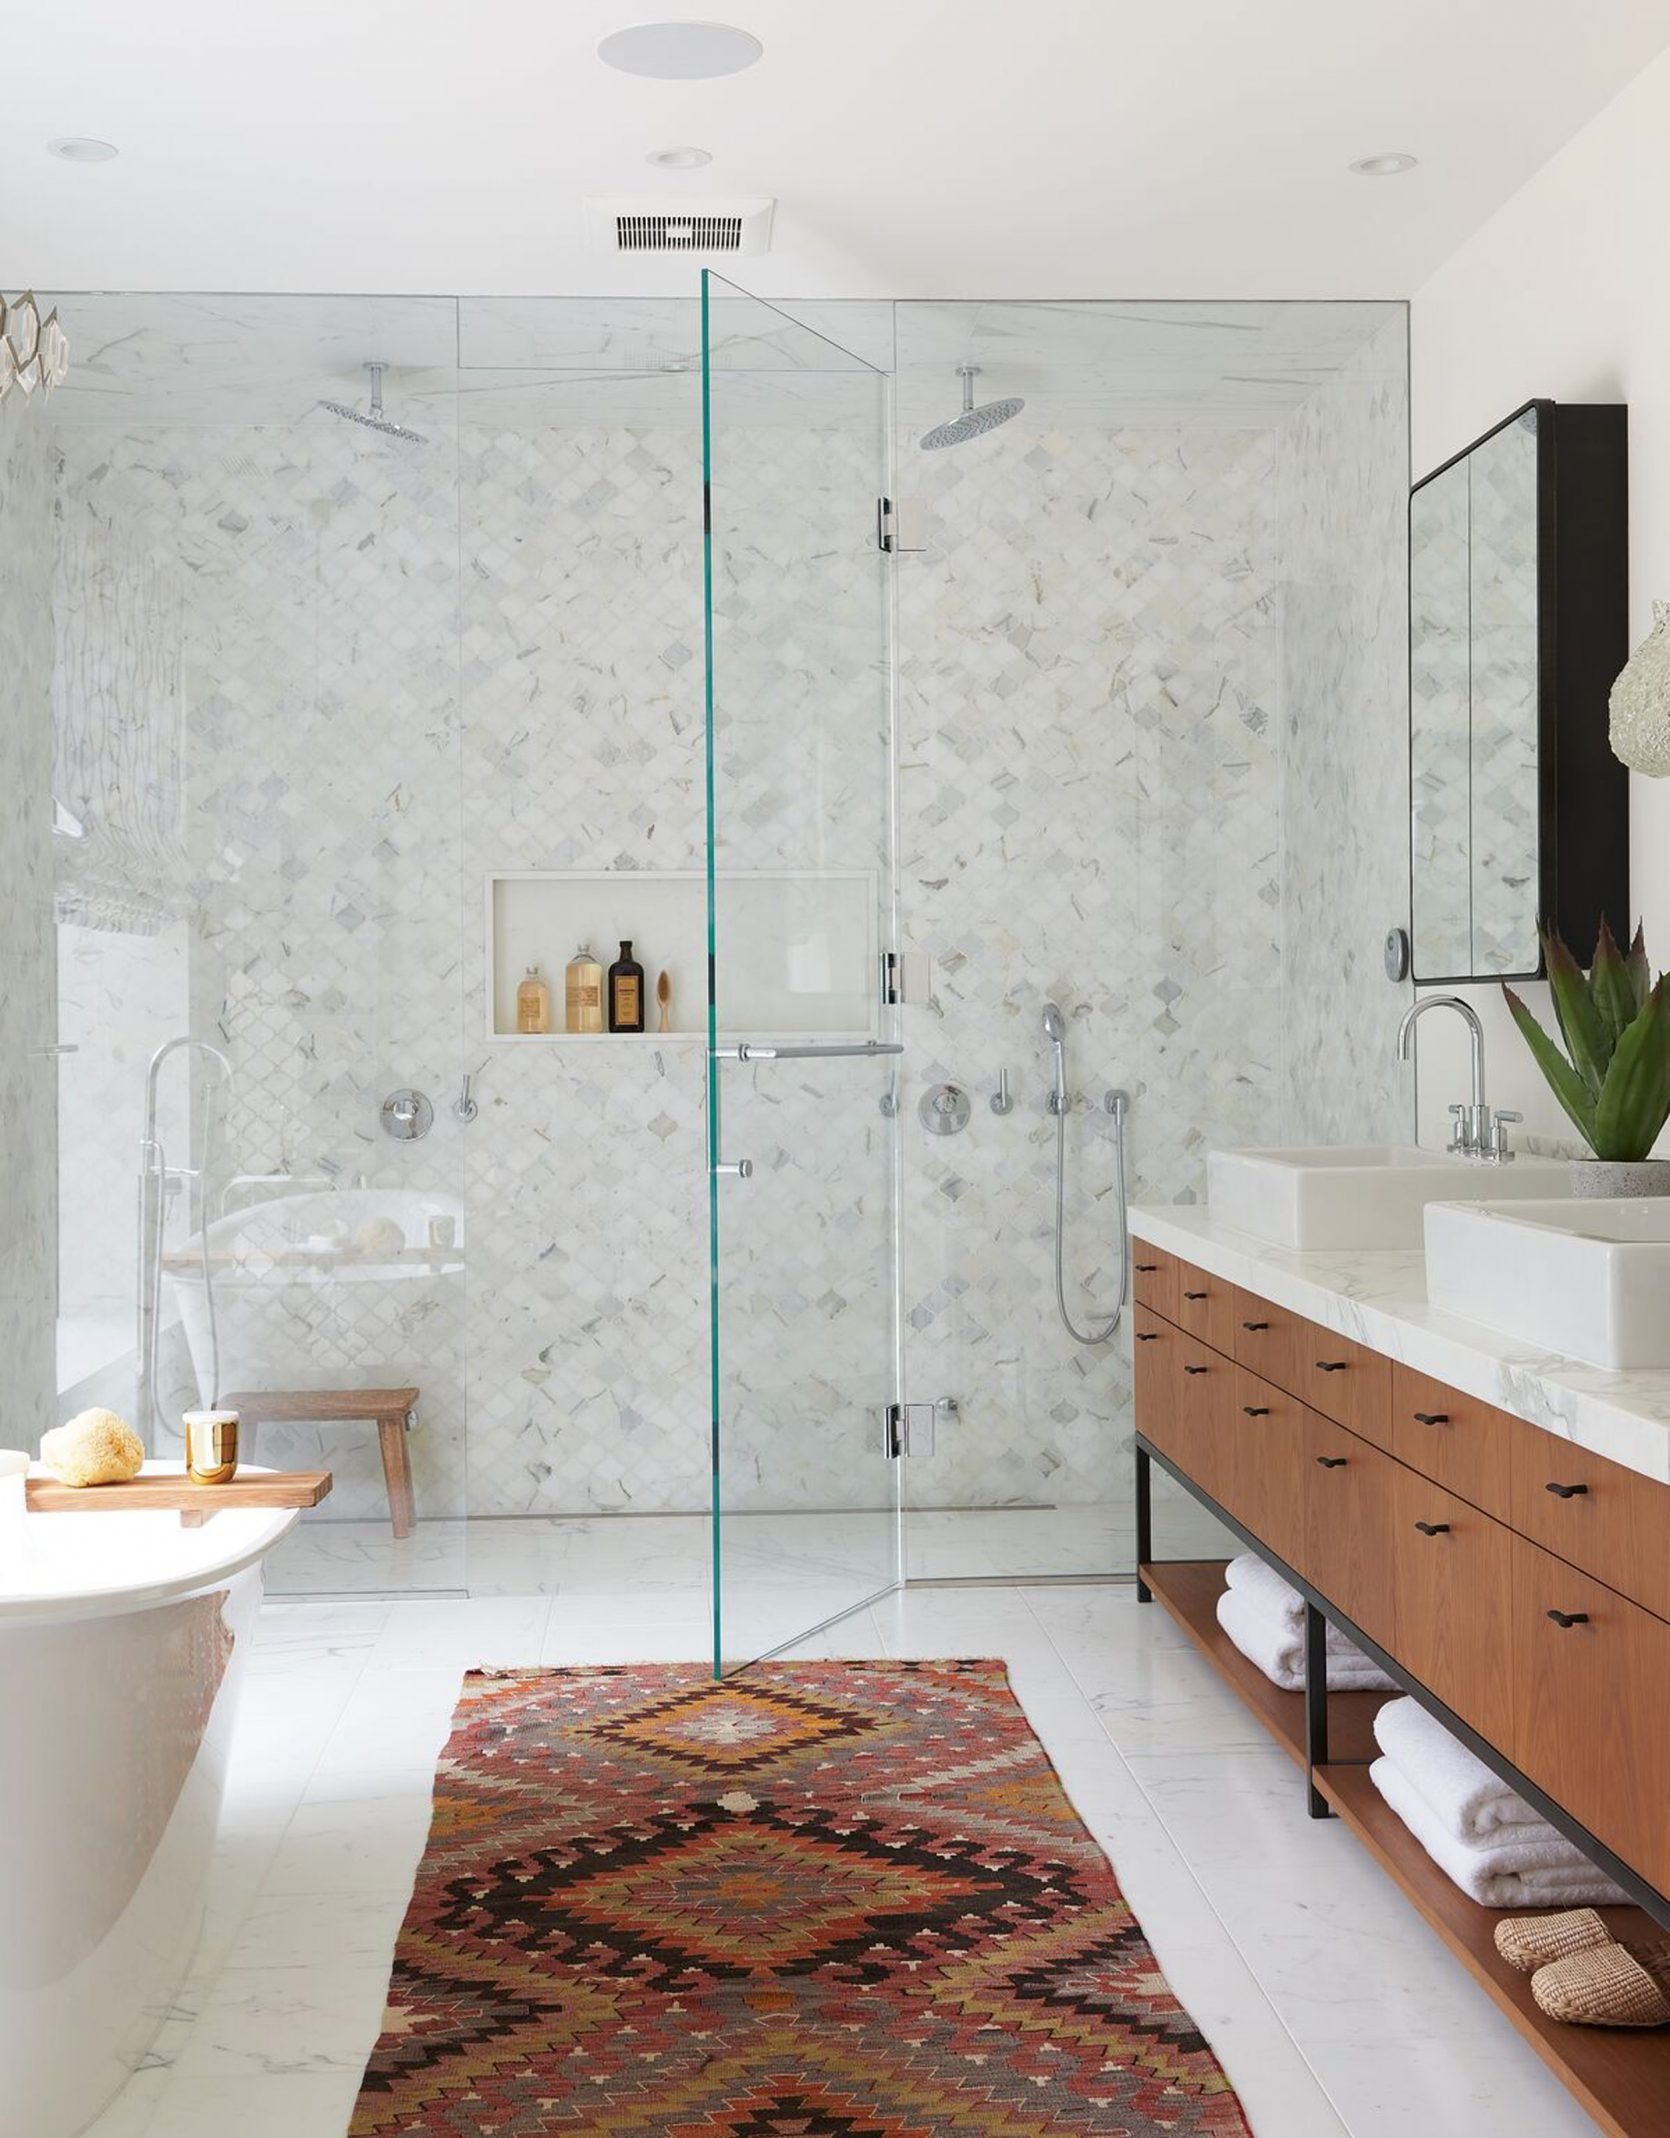 Badezimmer Set Trends 10 Of The Most Exciting Bathroom Design Trends For 2019